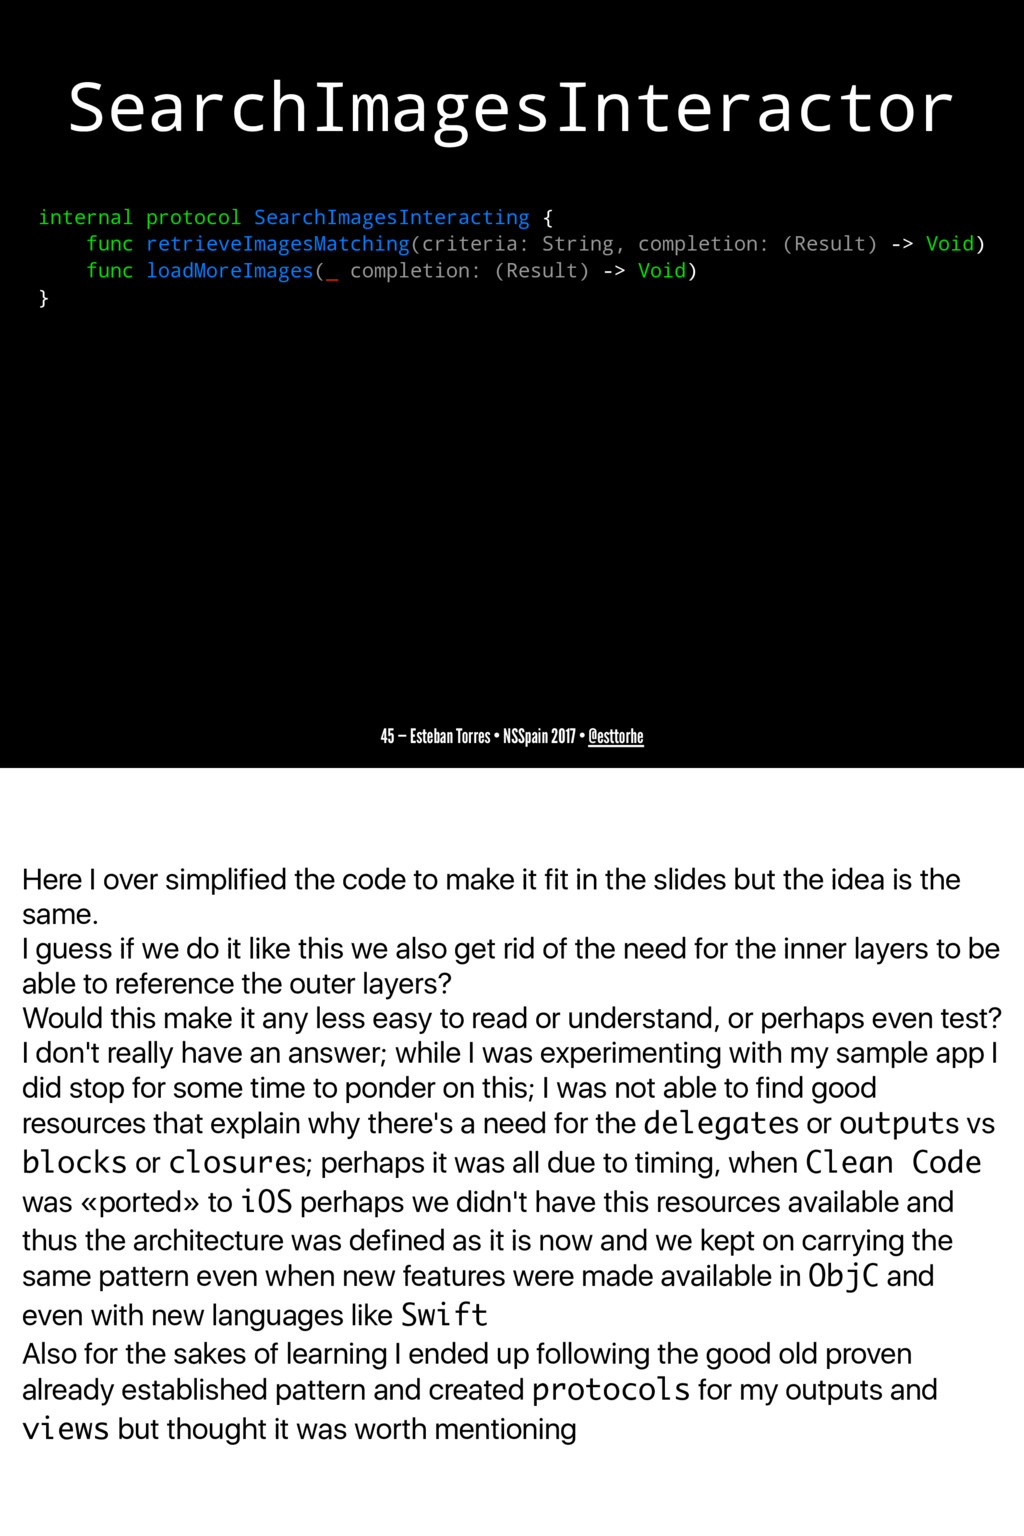 Here I over simplified the code to make it fit ...